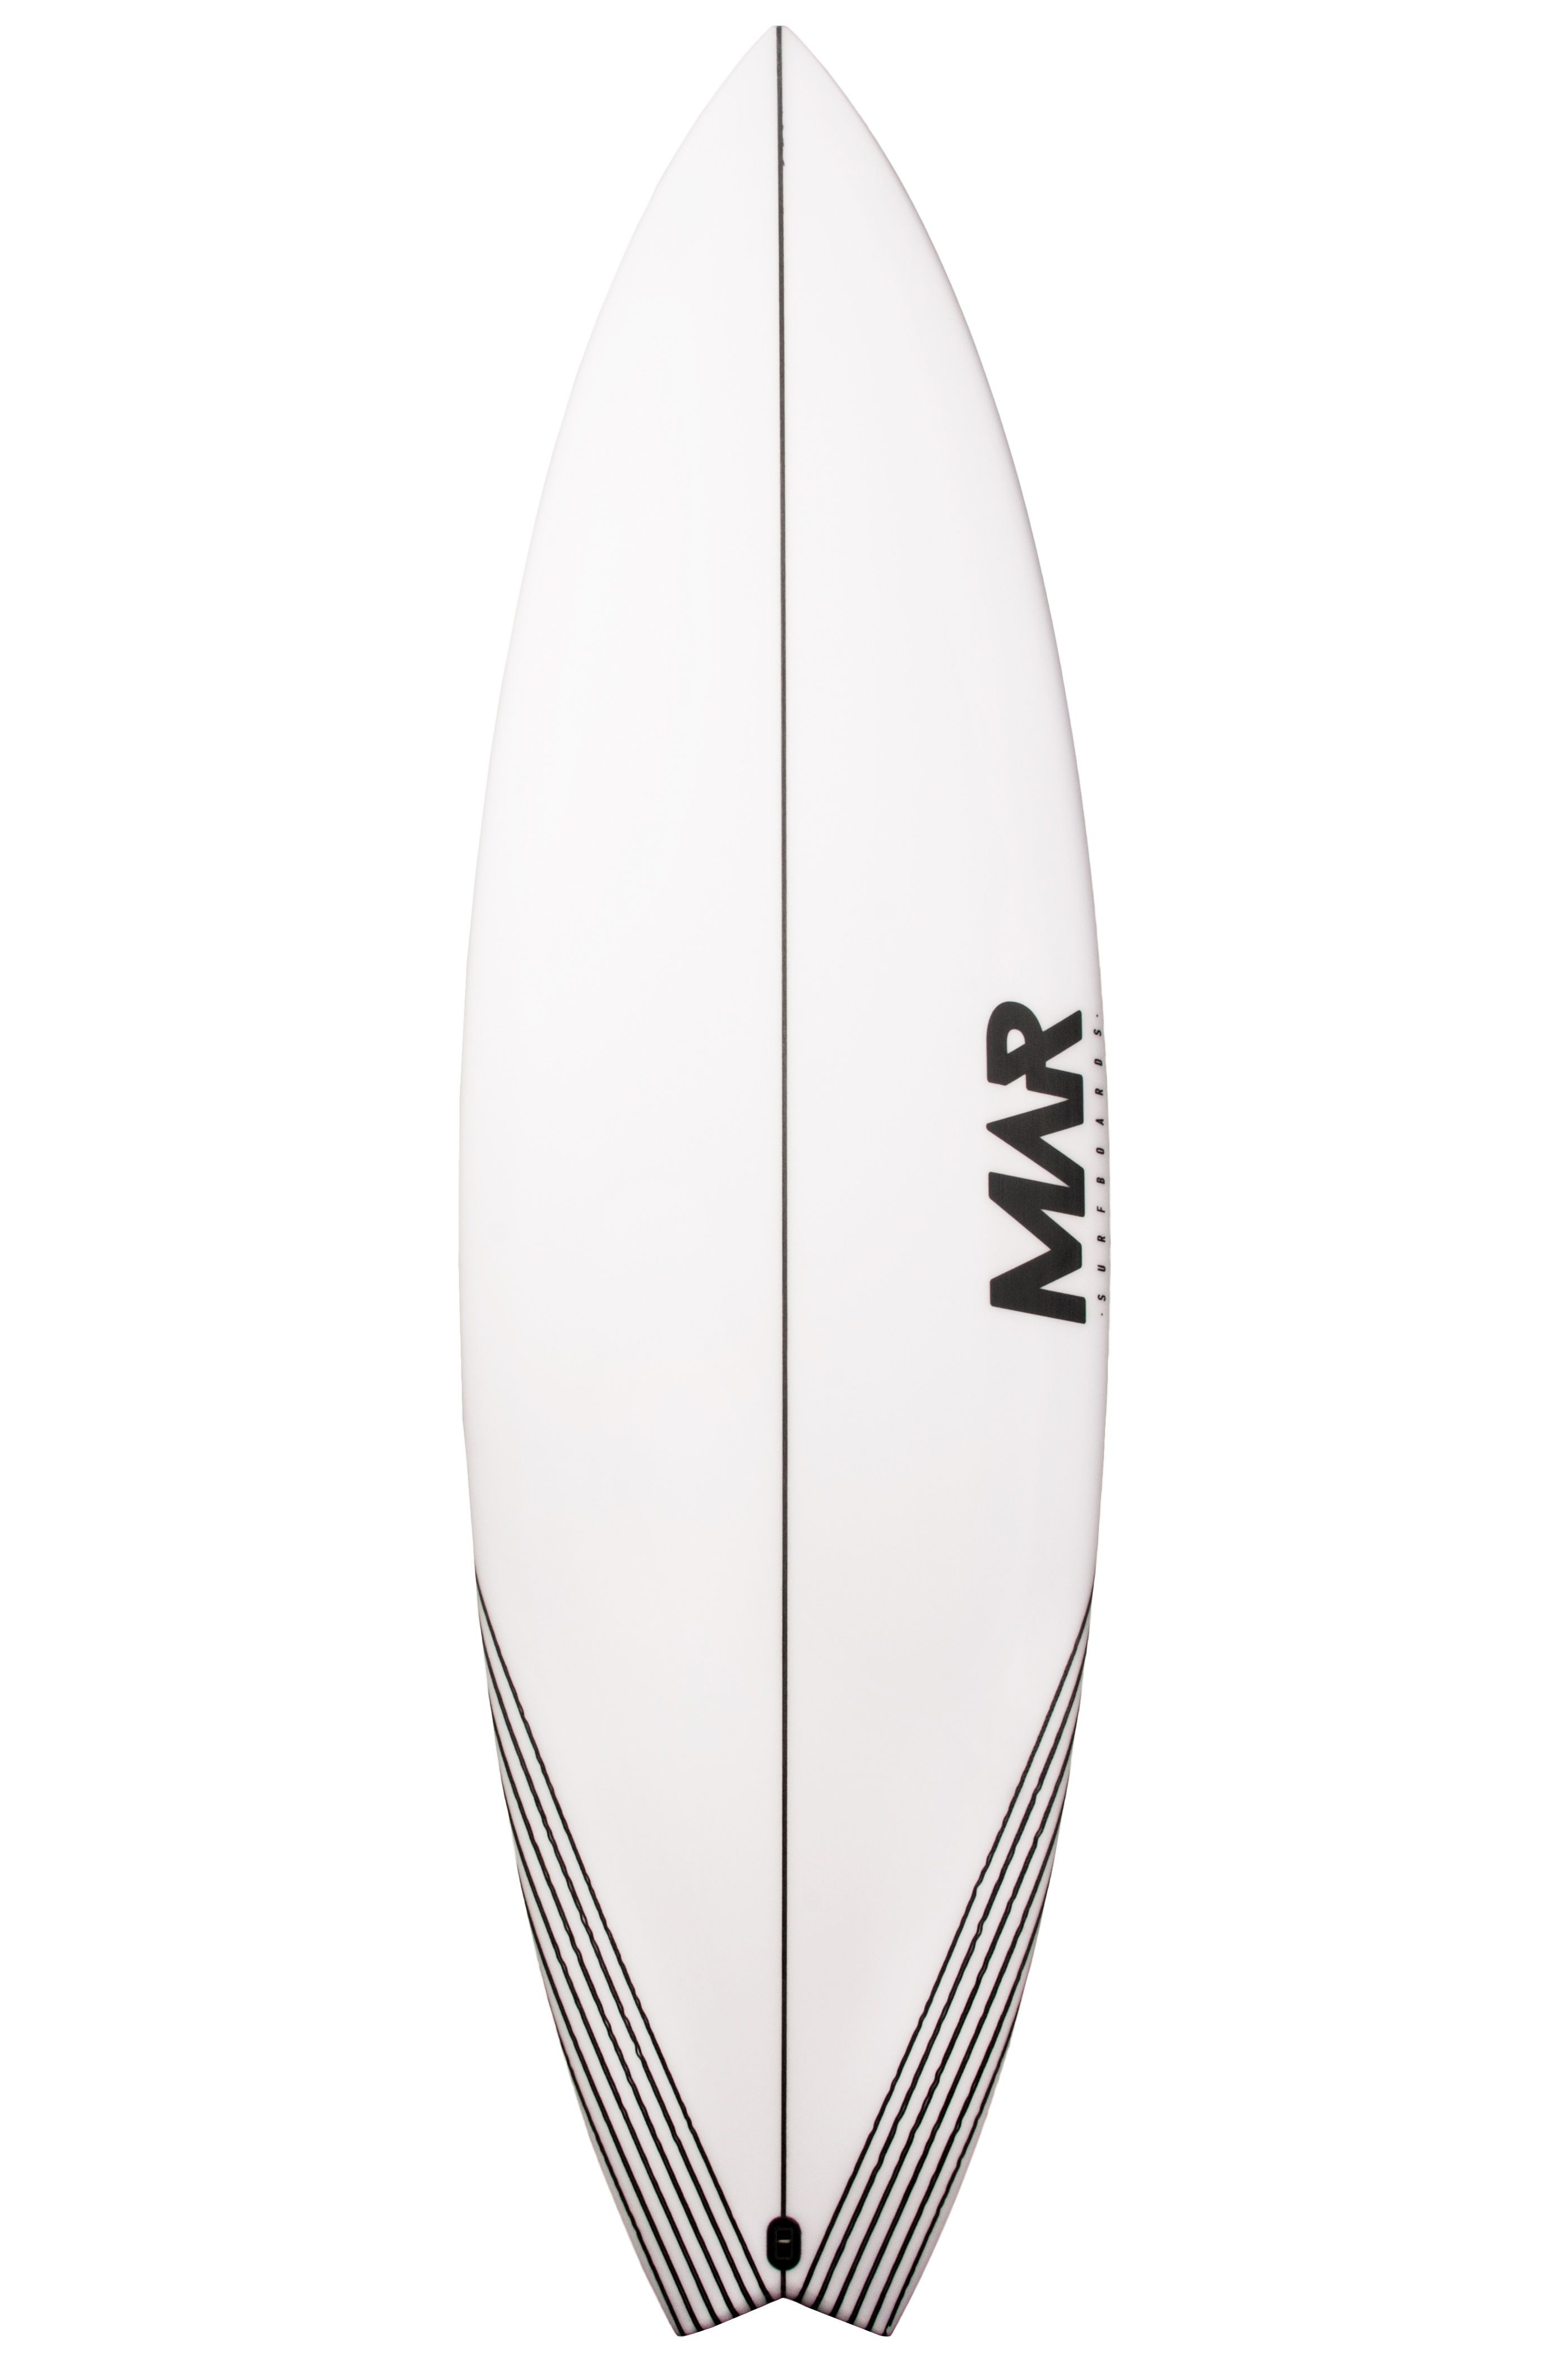 Prancha Surf Mar 5'2 PARROT PU Swallow Tail - White FCS II 5ft2